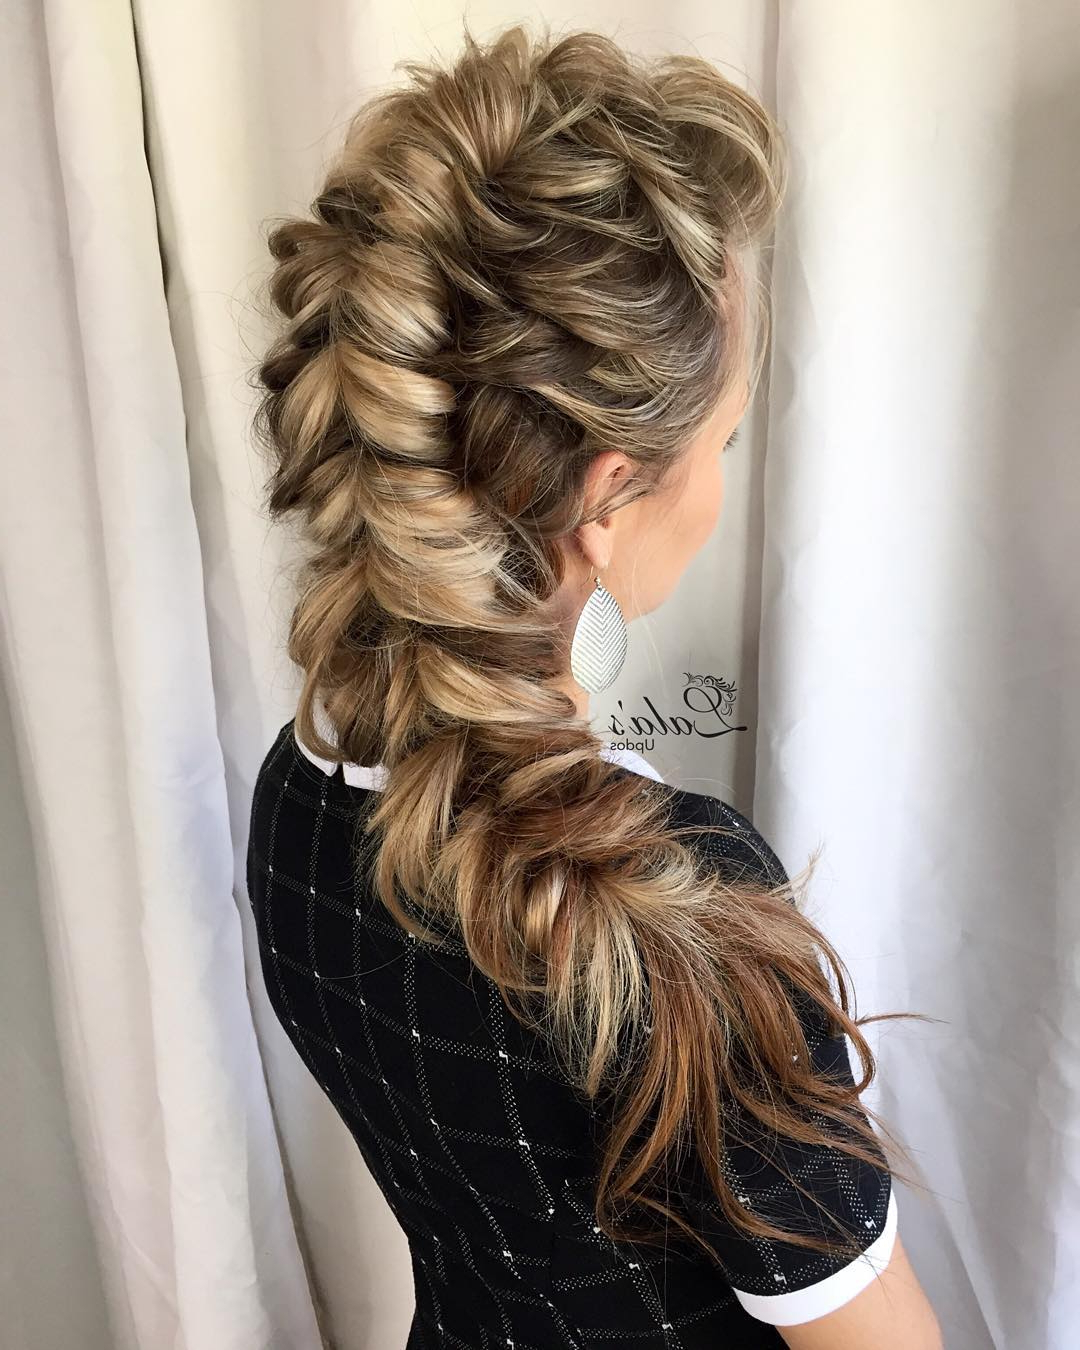 20 Ways To Style A Pull Through Braid (2019 Definitive Guide) Pertaining To Most Recent Tangled Braided Crown Prom Hairstyles (View 11 of 20)